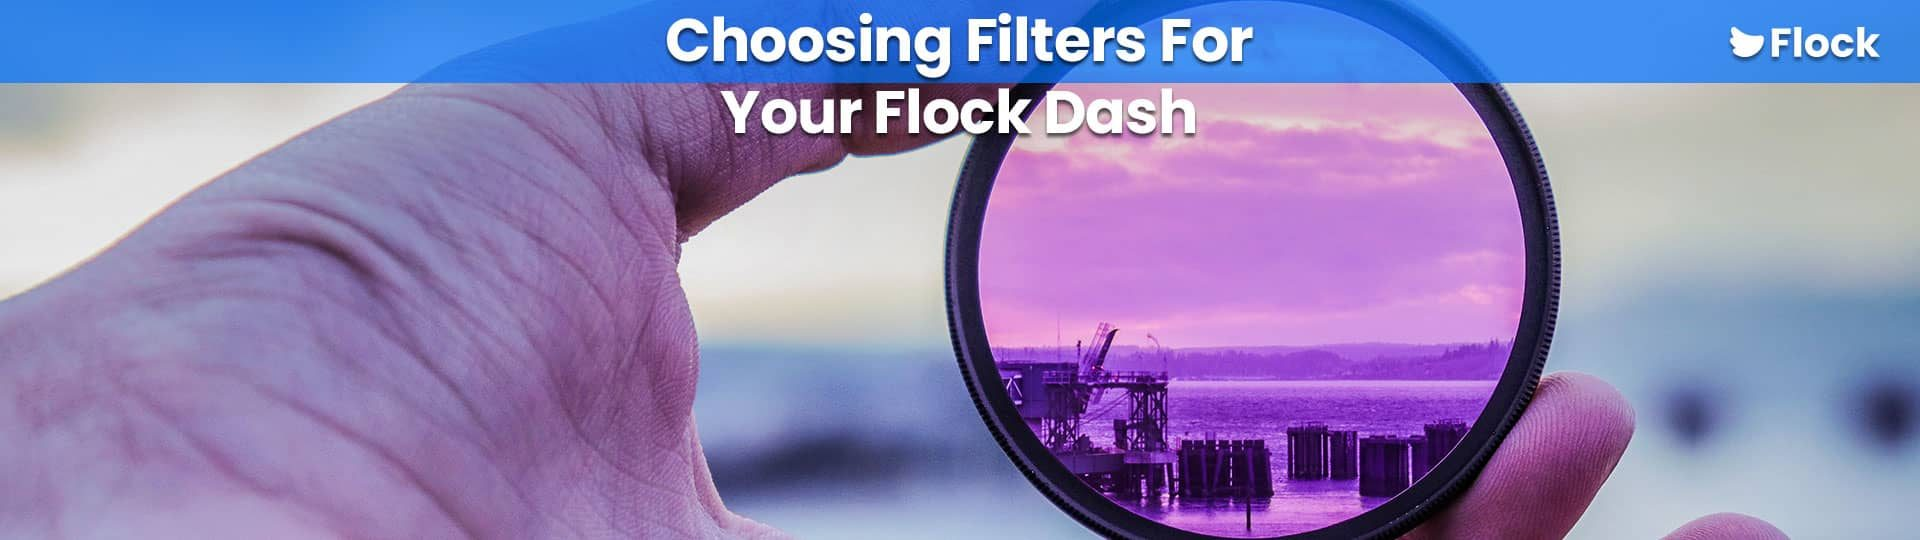 Filters-for-Flock-Dash